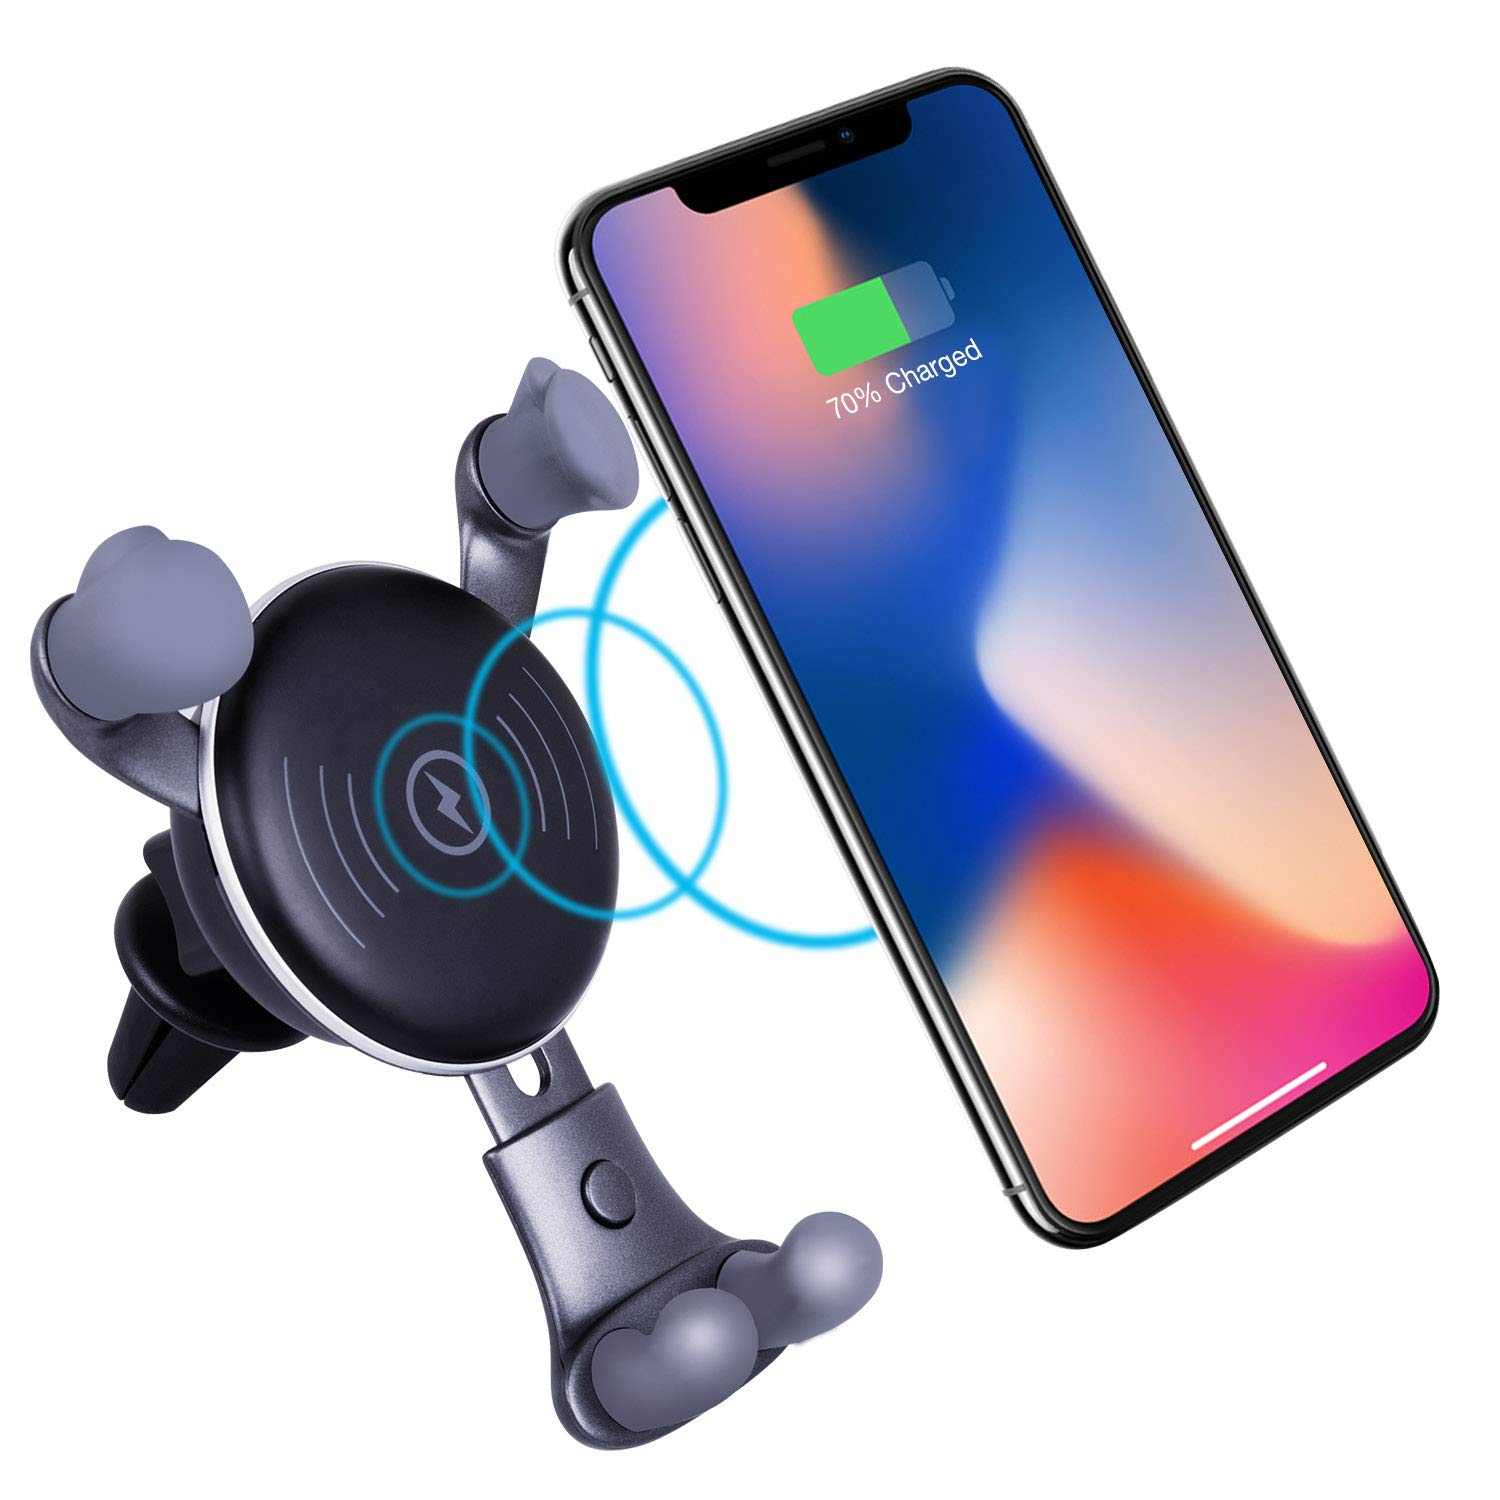 Wireless Charger,TaoTens Cell Phones Accessories Car Mount S7//S7 Edge Note 8 5 and 5W Standard Charge for iPhone Xs MAX,iPhone Xs,iPhone X Air Vent Phone Holder 10W Charge for Samsung Galaxy S8